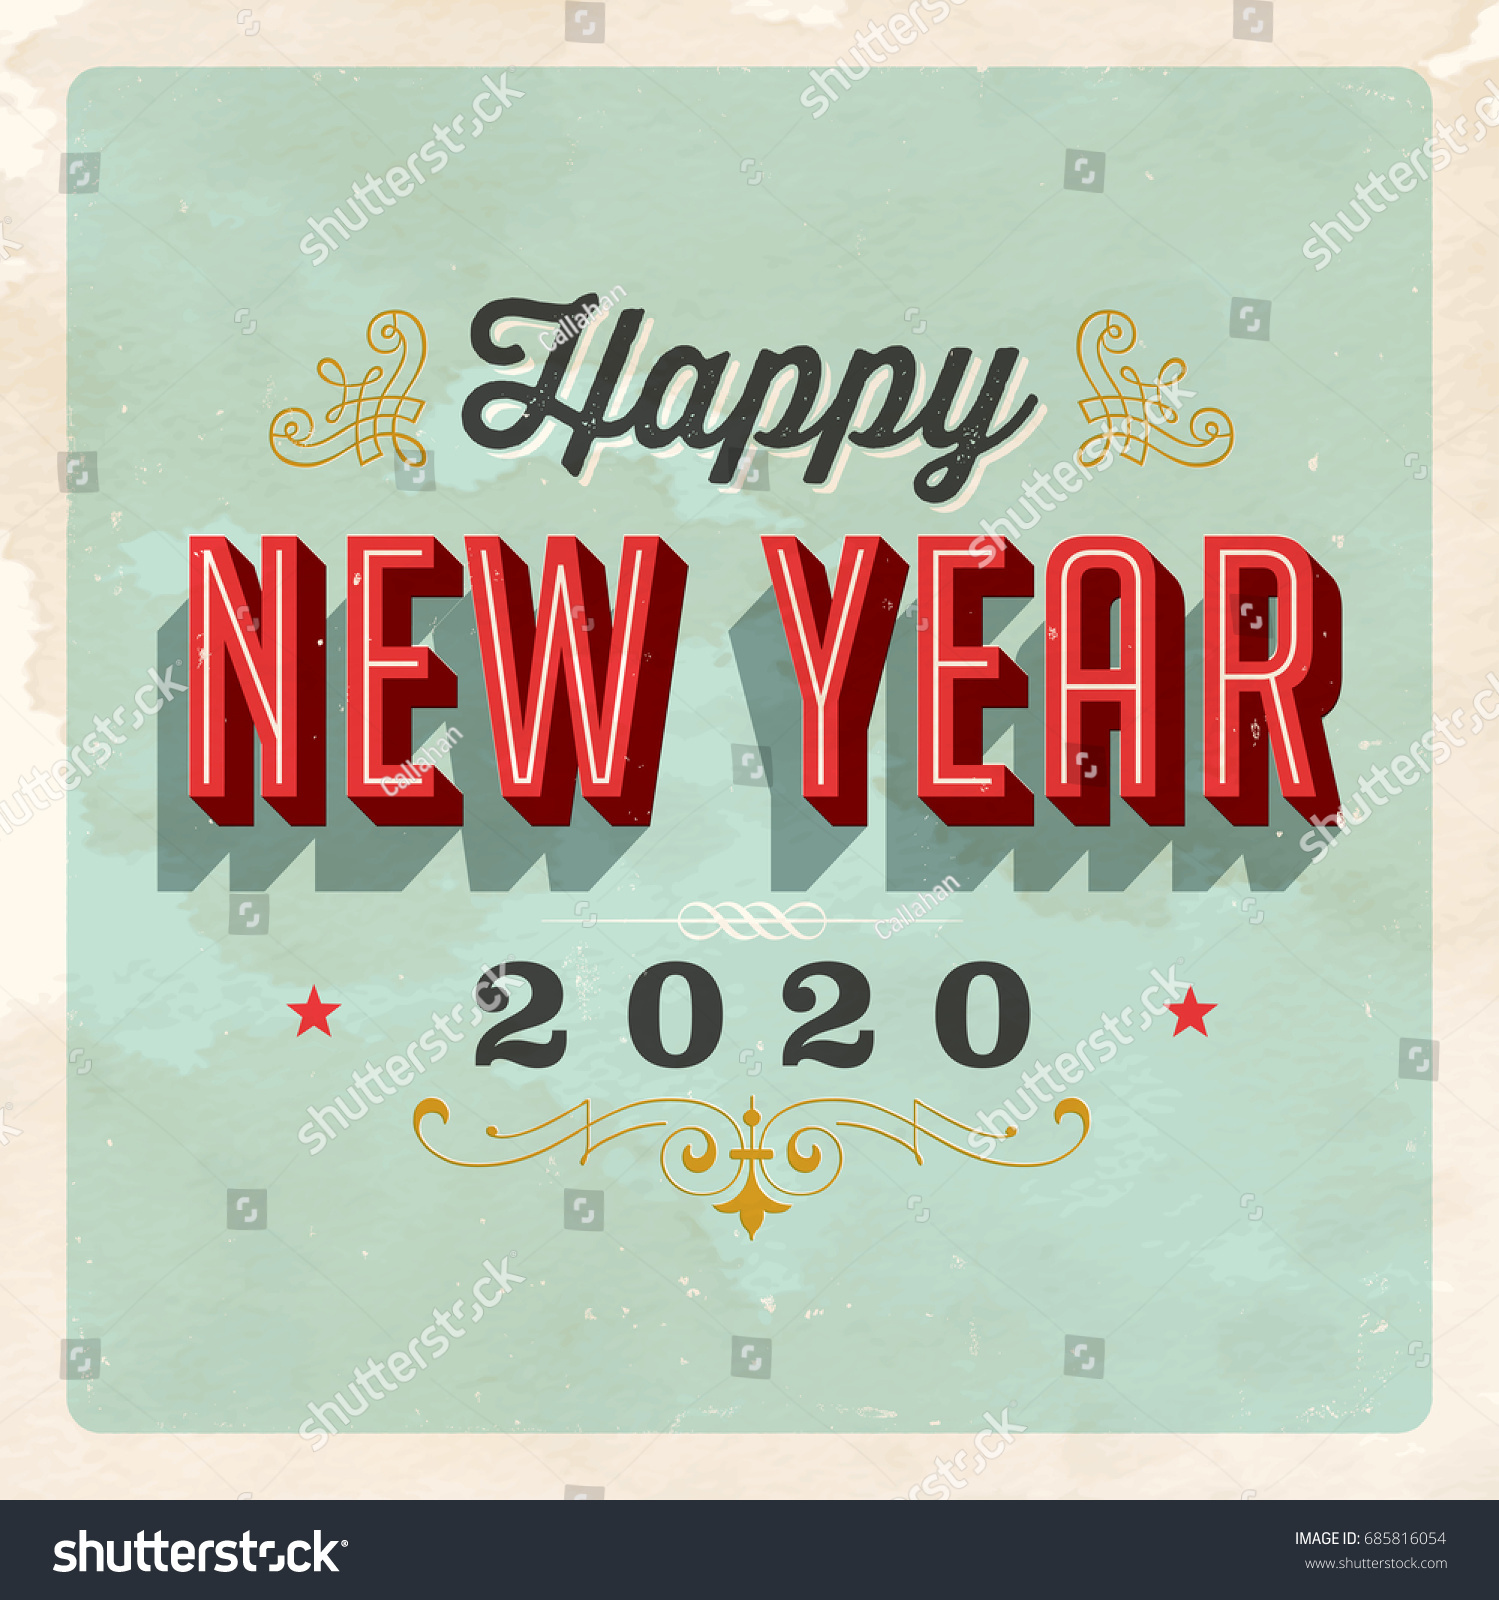 vintage 2020 new years eve greeting card vector eps 10 grunge effects can be